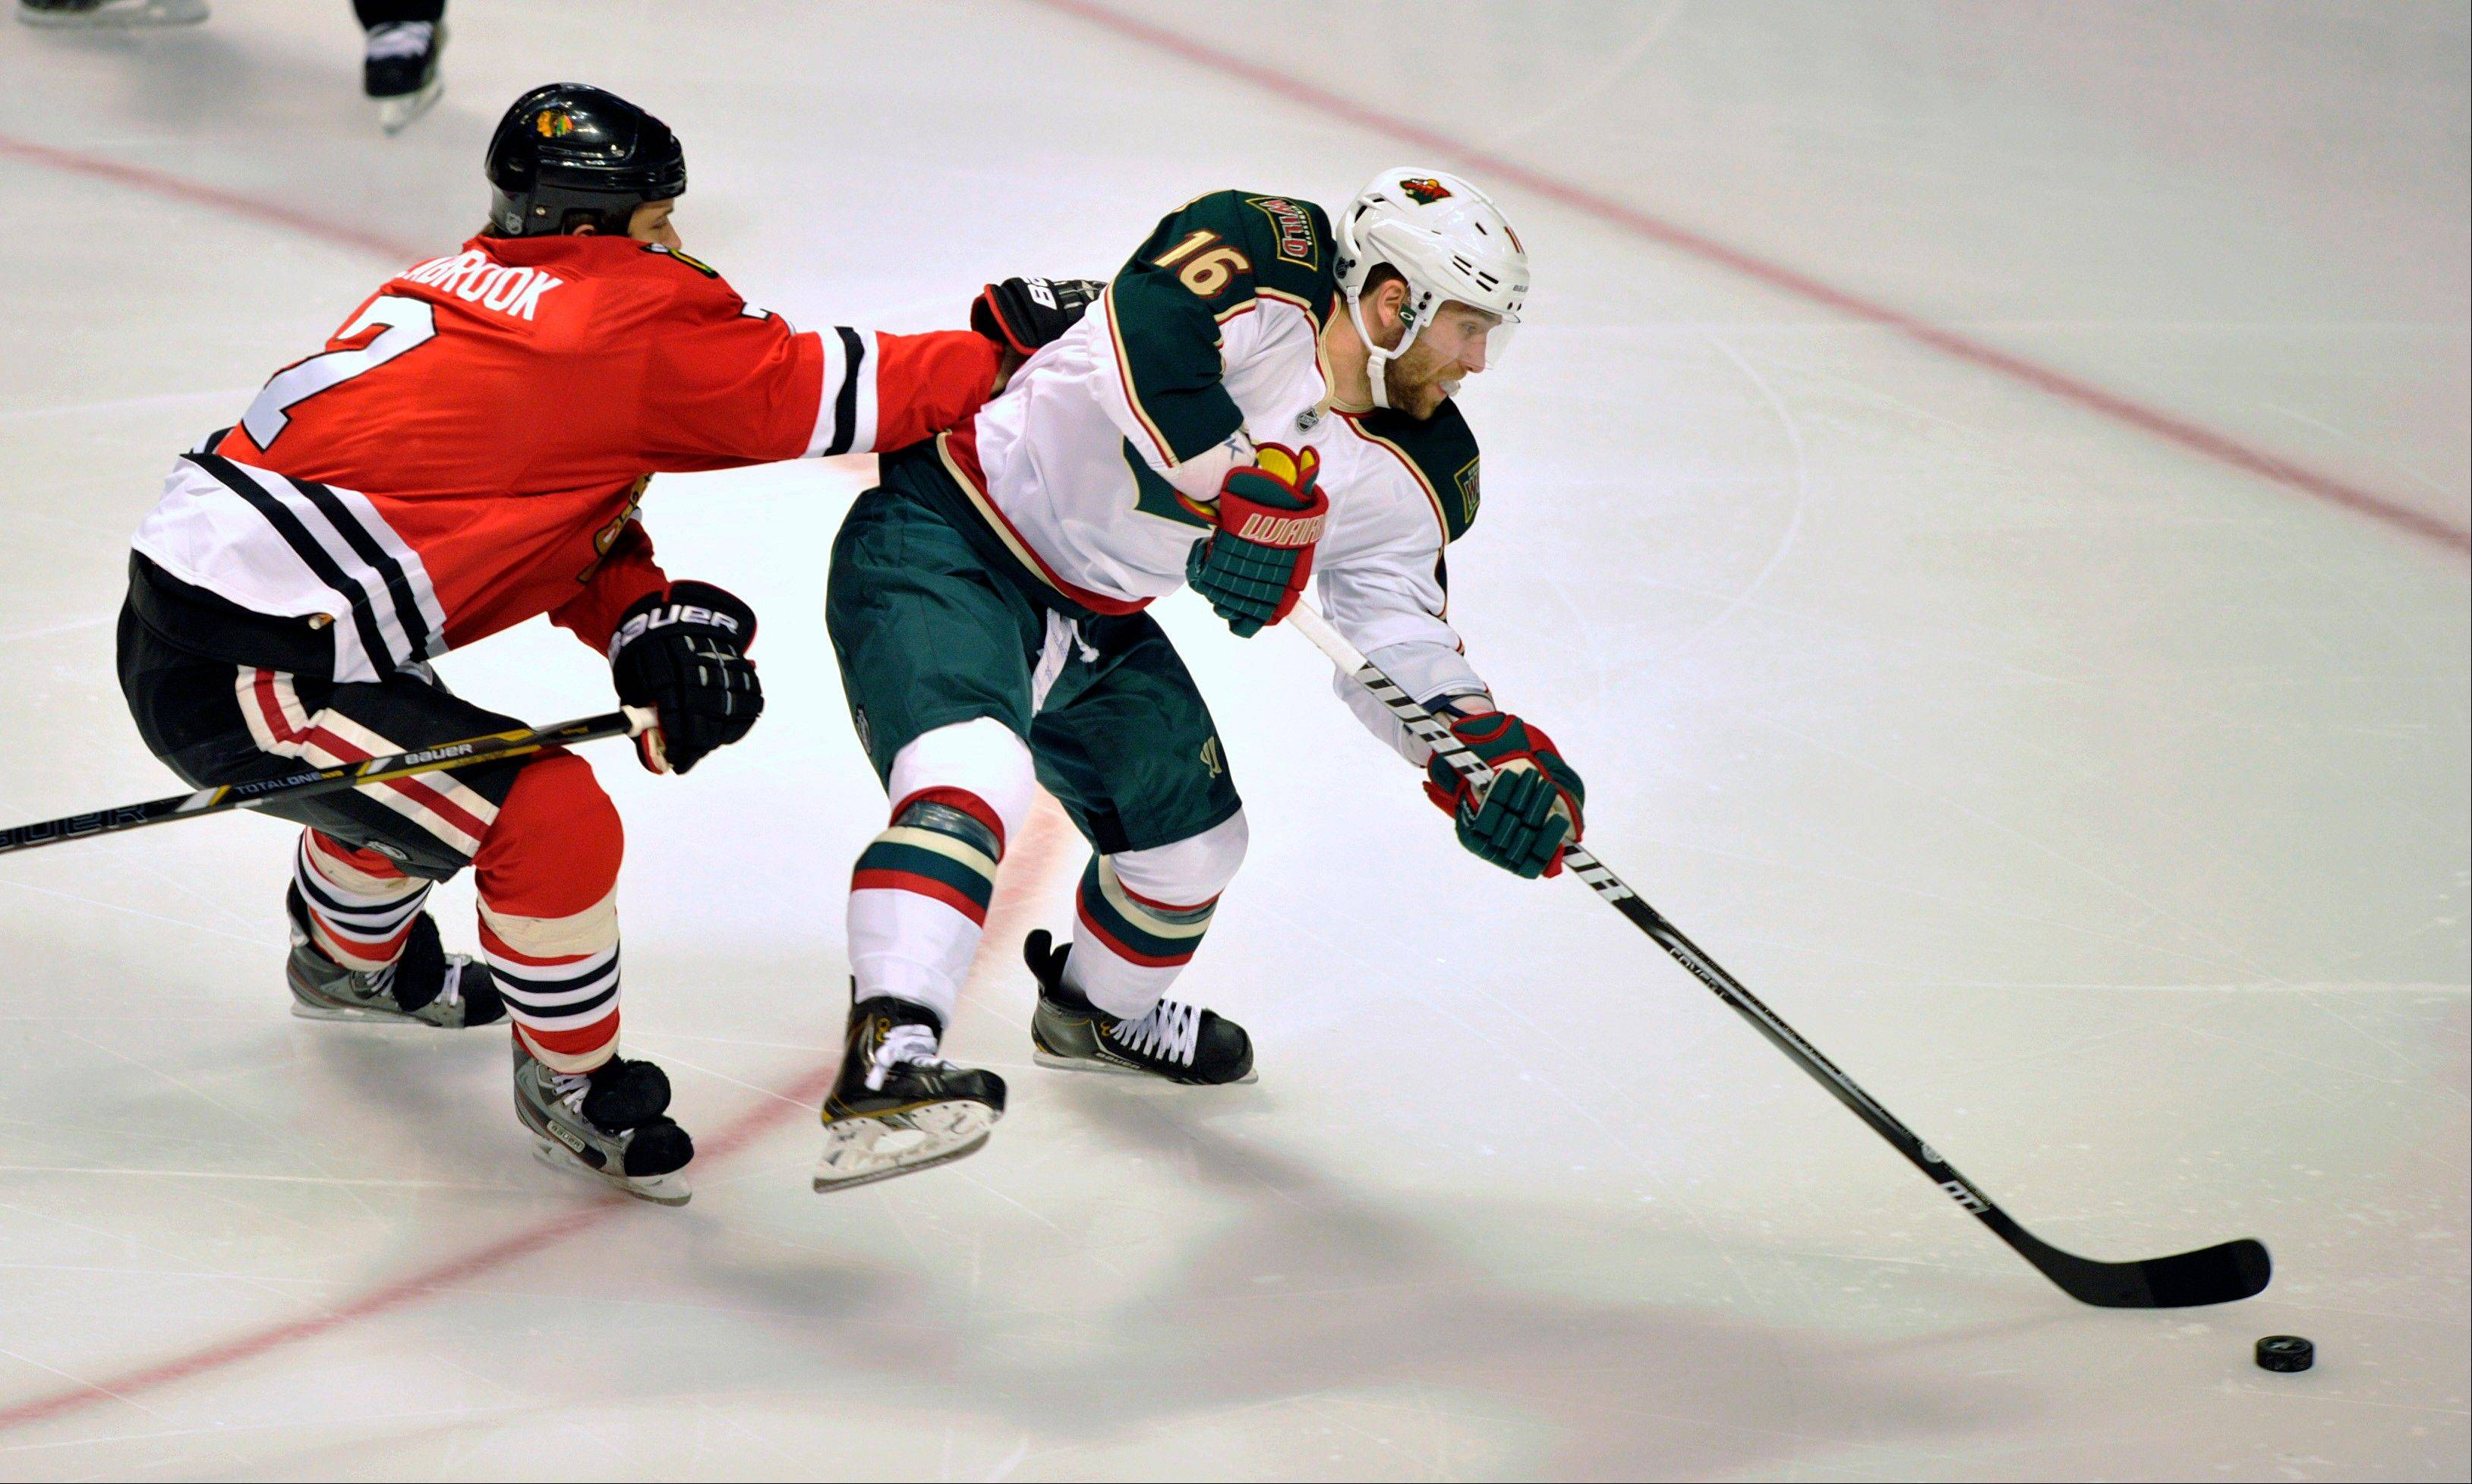 Chicago Blackhawks' Brent Seabrook checks the Minnesota Wild's Jason Zucker (16) as he handles the puck during the first period of Game 1 of an NHL hockey Stanley Cup playoff series, Tuesday, April 30, 2013, in Chicago.